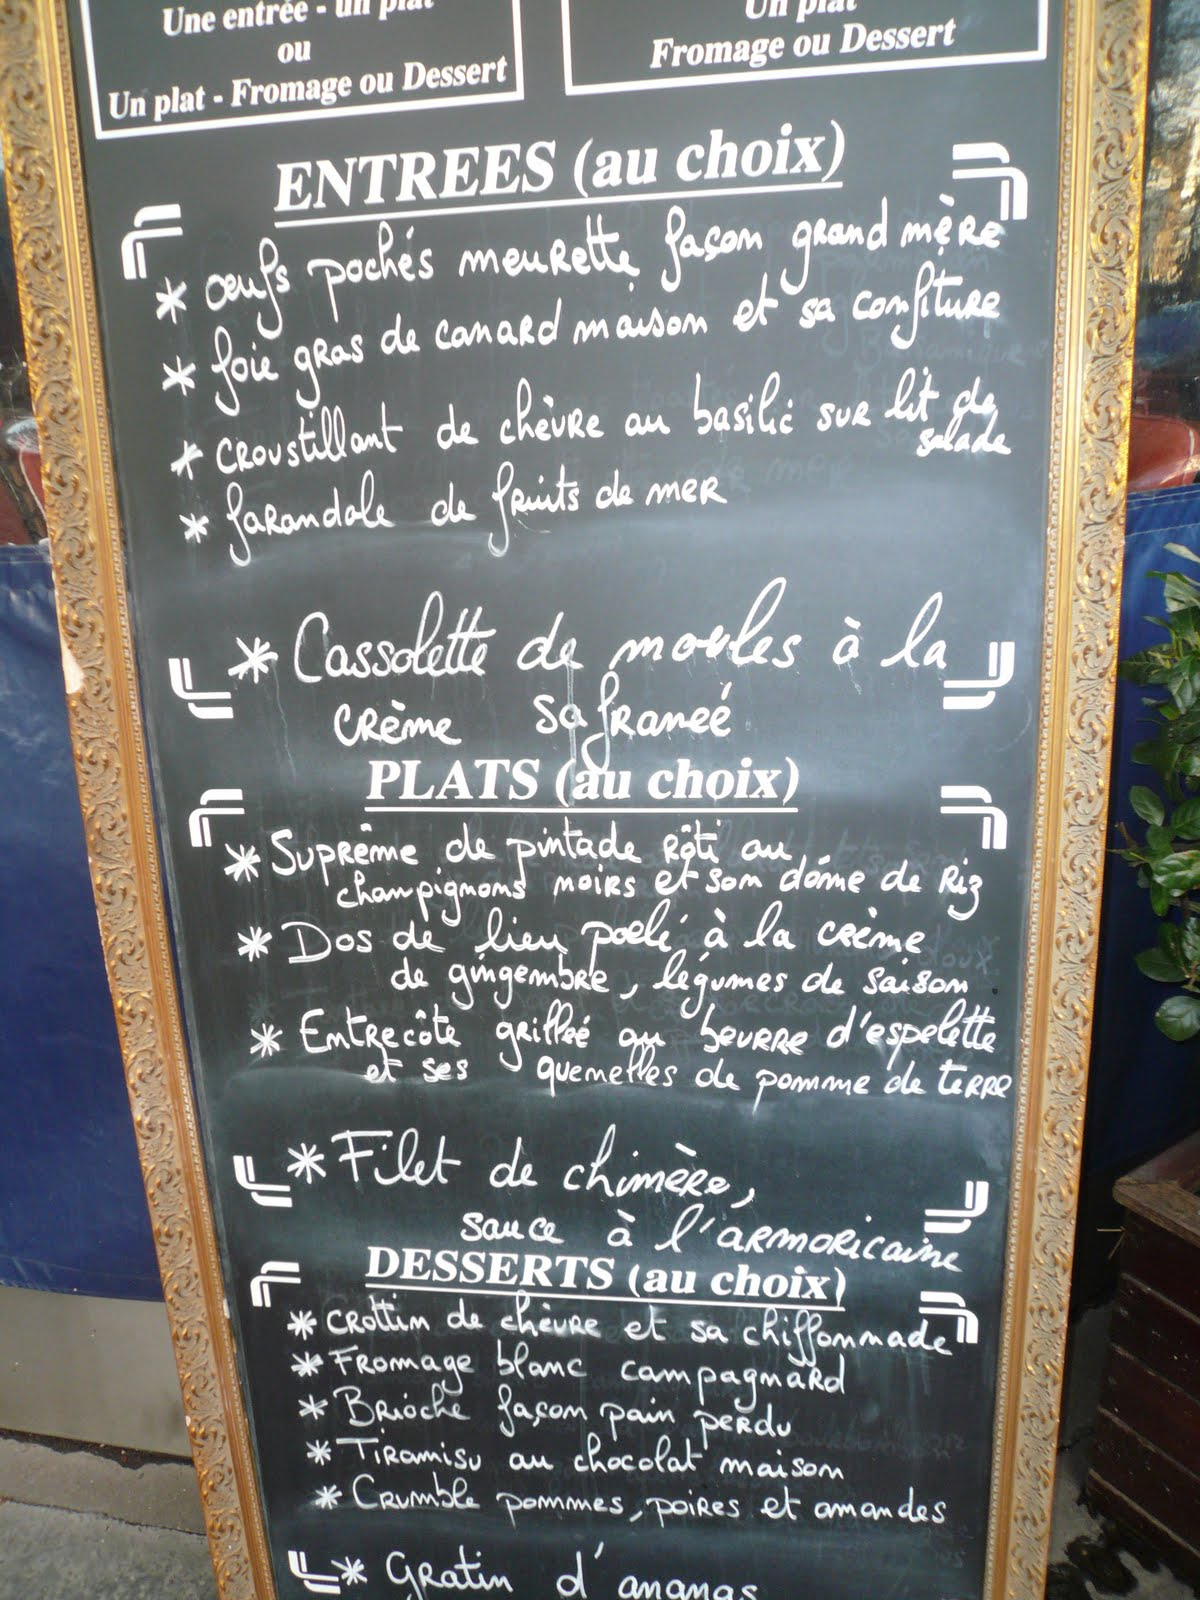 french virtual cafe: lunch in paris for 10 to 25 dollars?